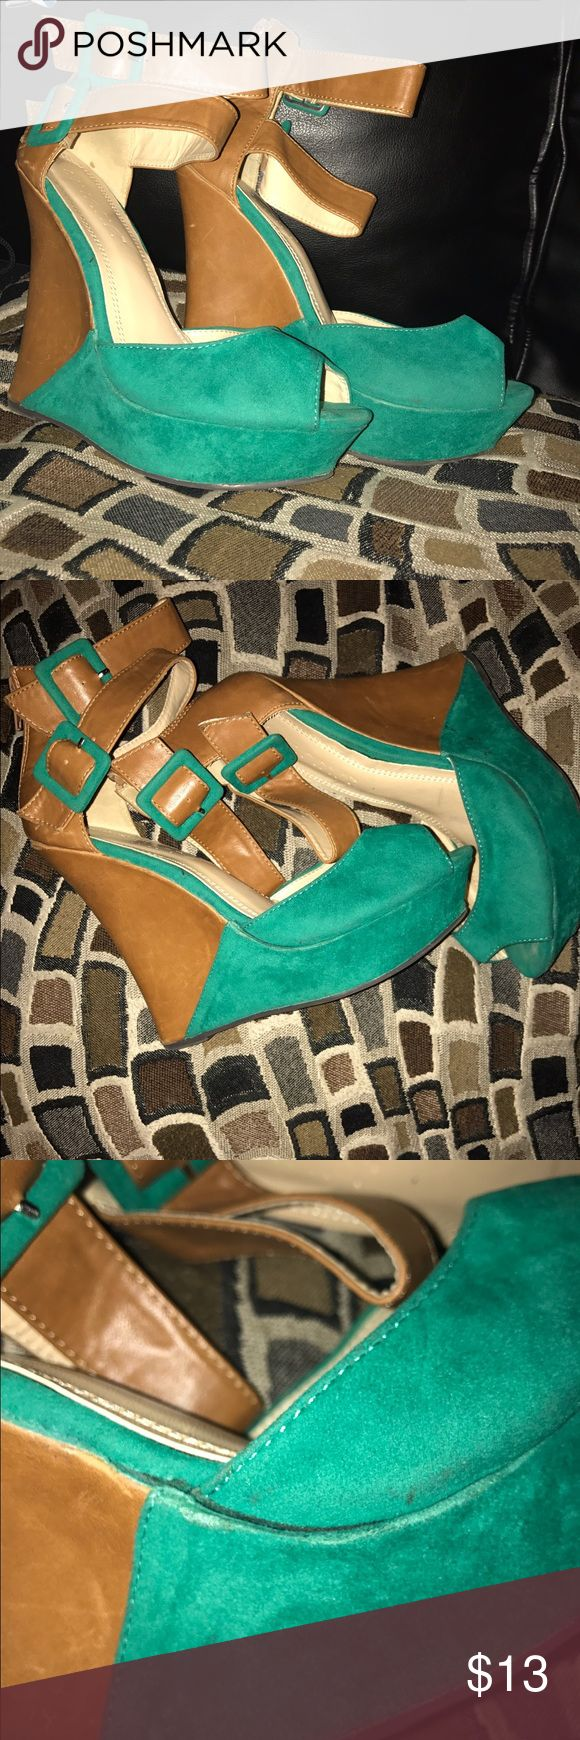 Tan and Green Wedges A cute Flirty wedge that is comfortable to wear. It's got a minor flaw,  noted in the last picture. Nothing that cant be repairer by a little shoe glue. Overall great shoe! Shoes Wedges